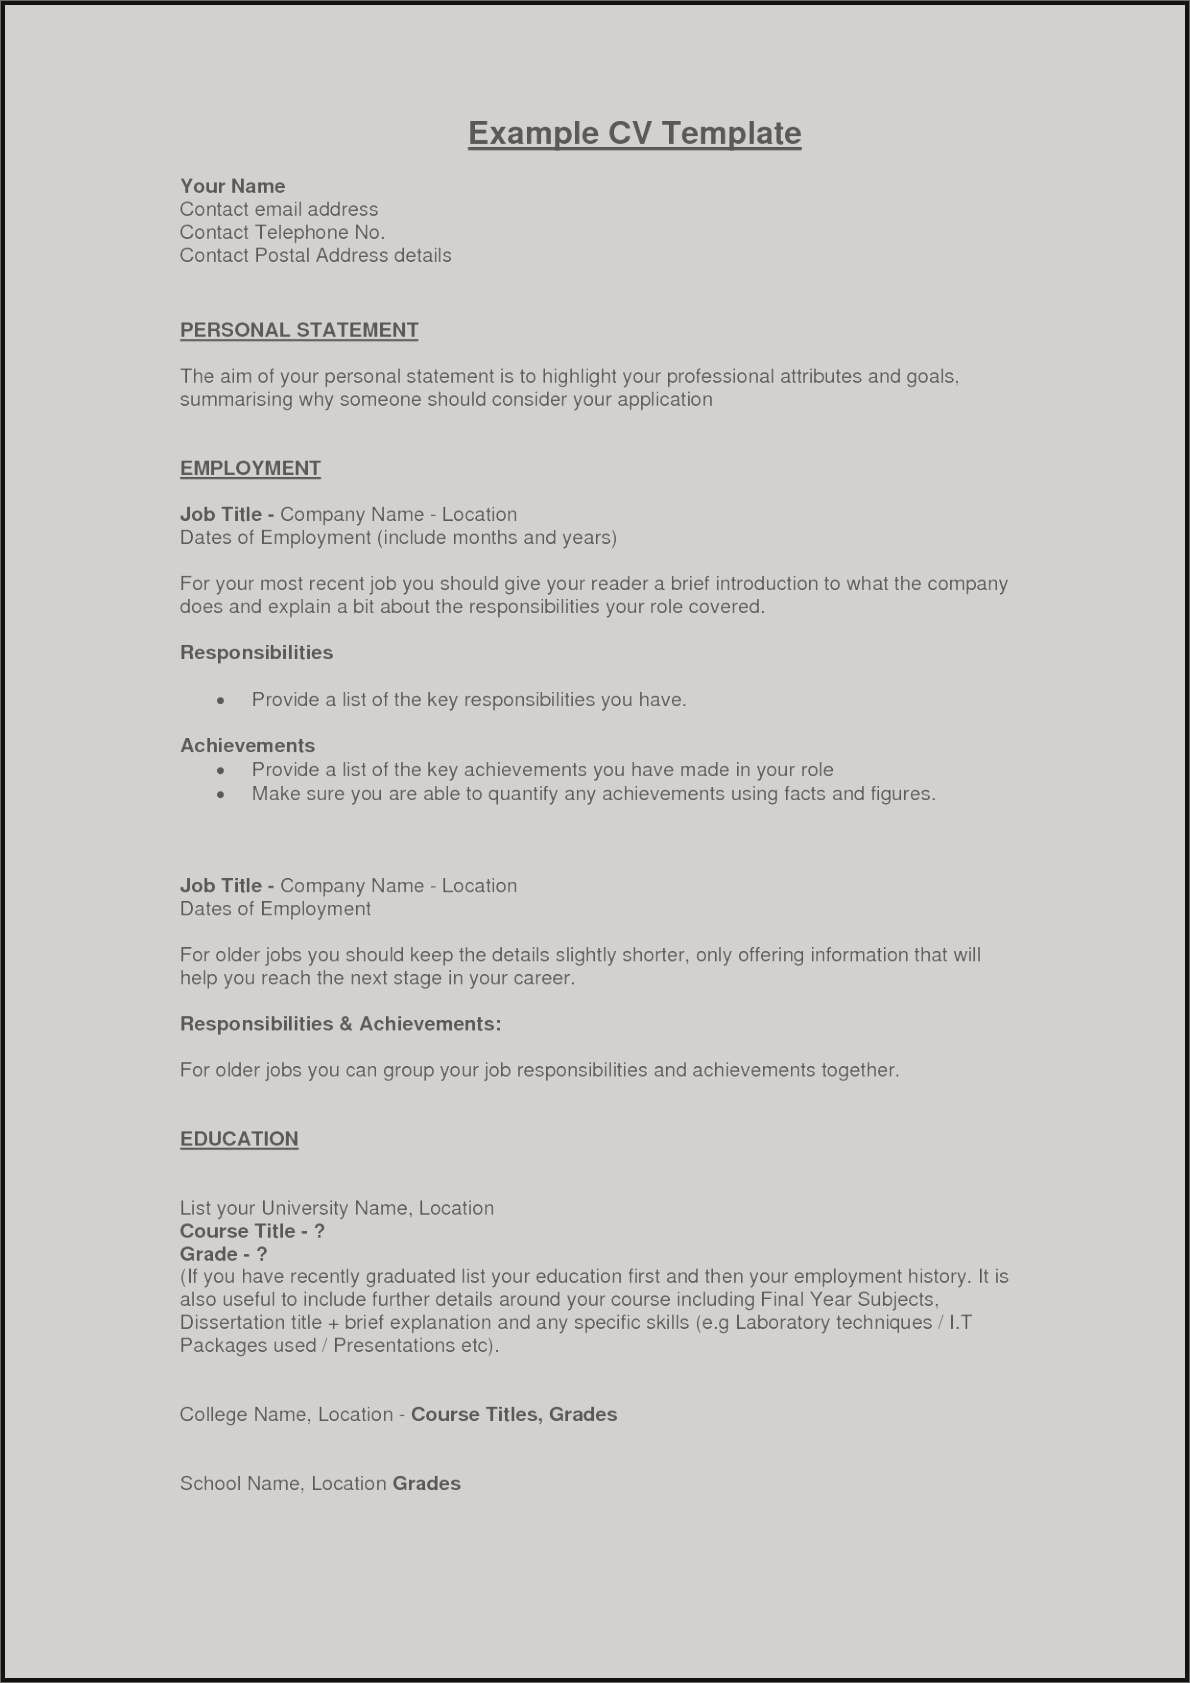 Resume Template for Business Analyst - Example Business Analyst Resume Best Example Perfect Resume Fresh